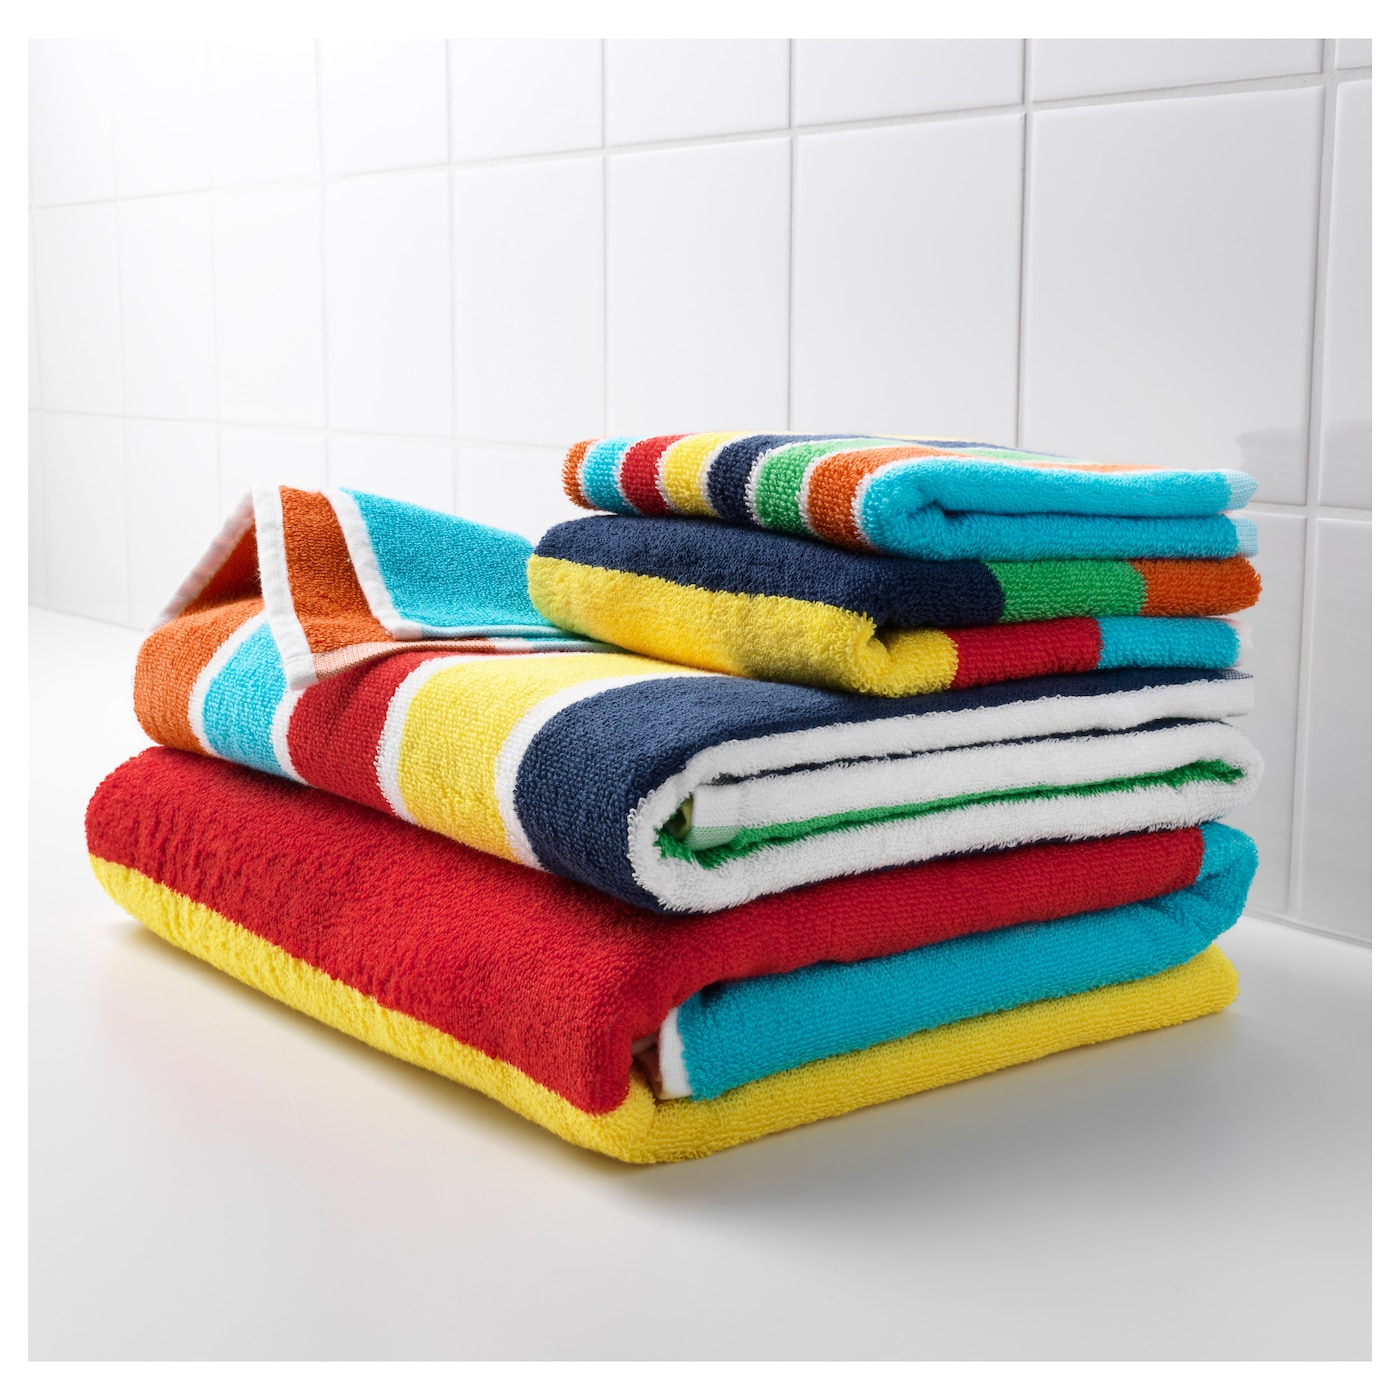 IKEA BOKVIK bath sheet The long, fine fibres of combed cotton create a soft and durable towel.